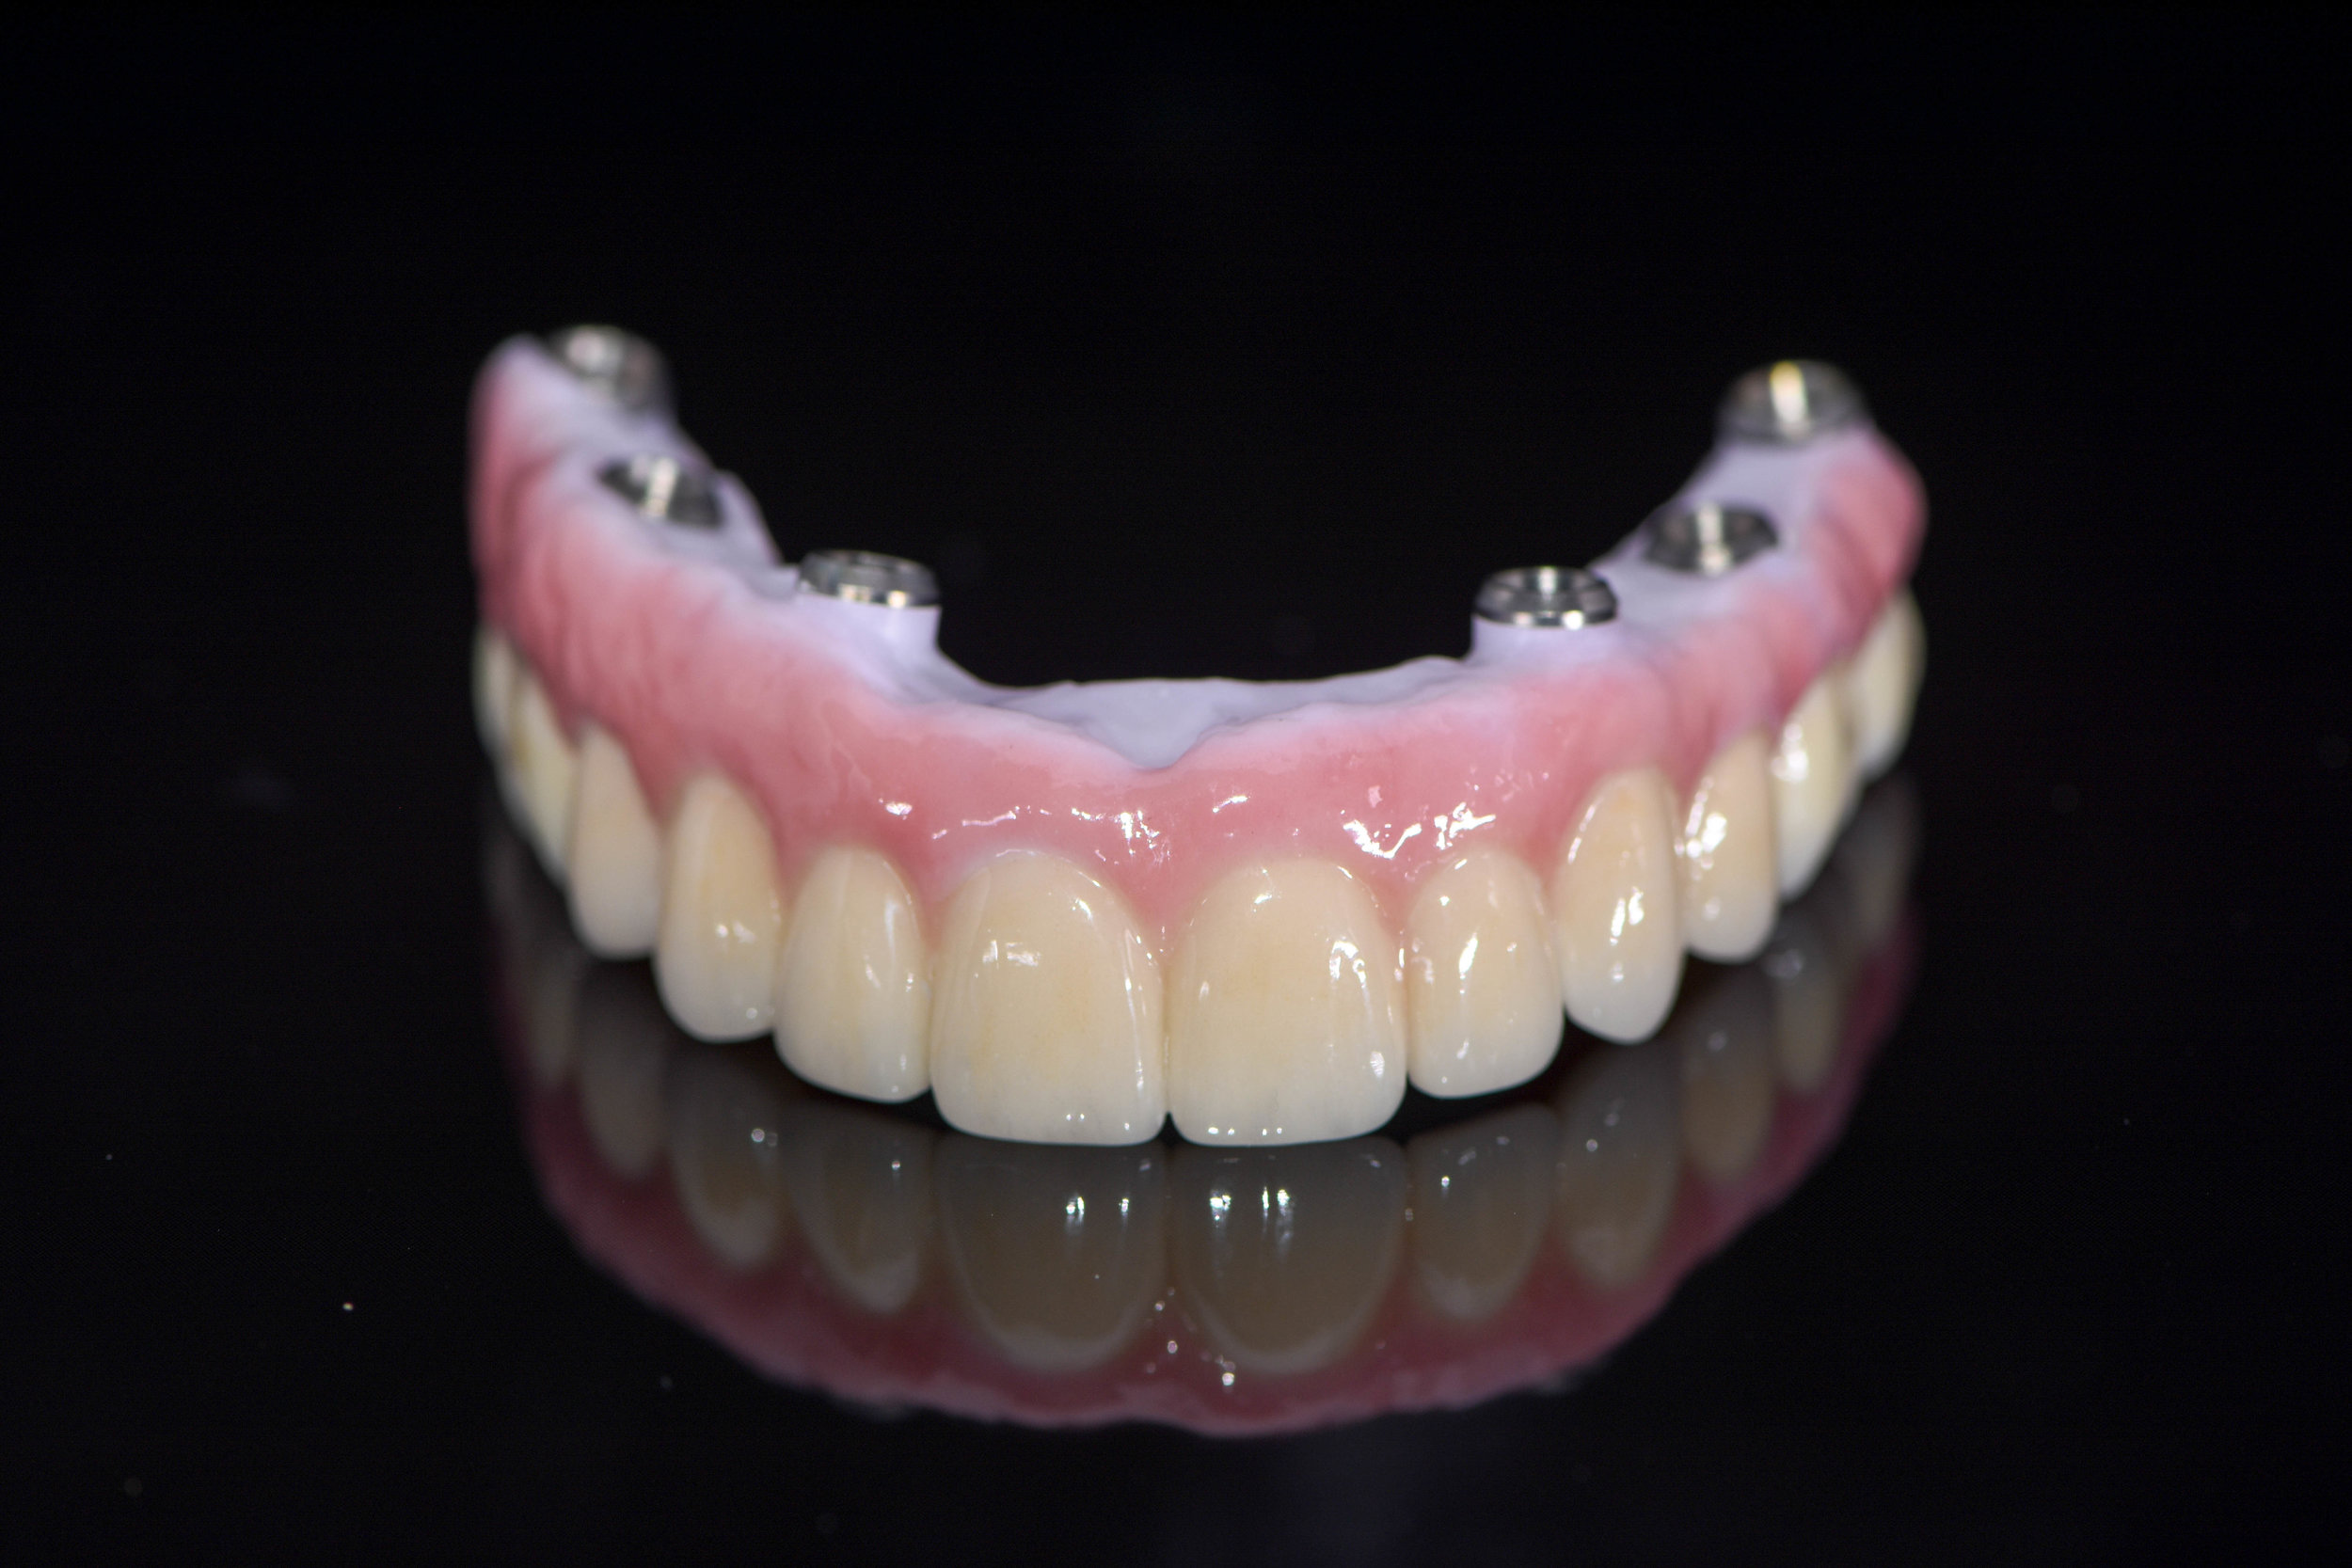 Completed implant denture